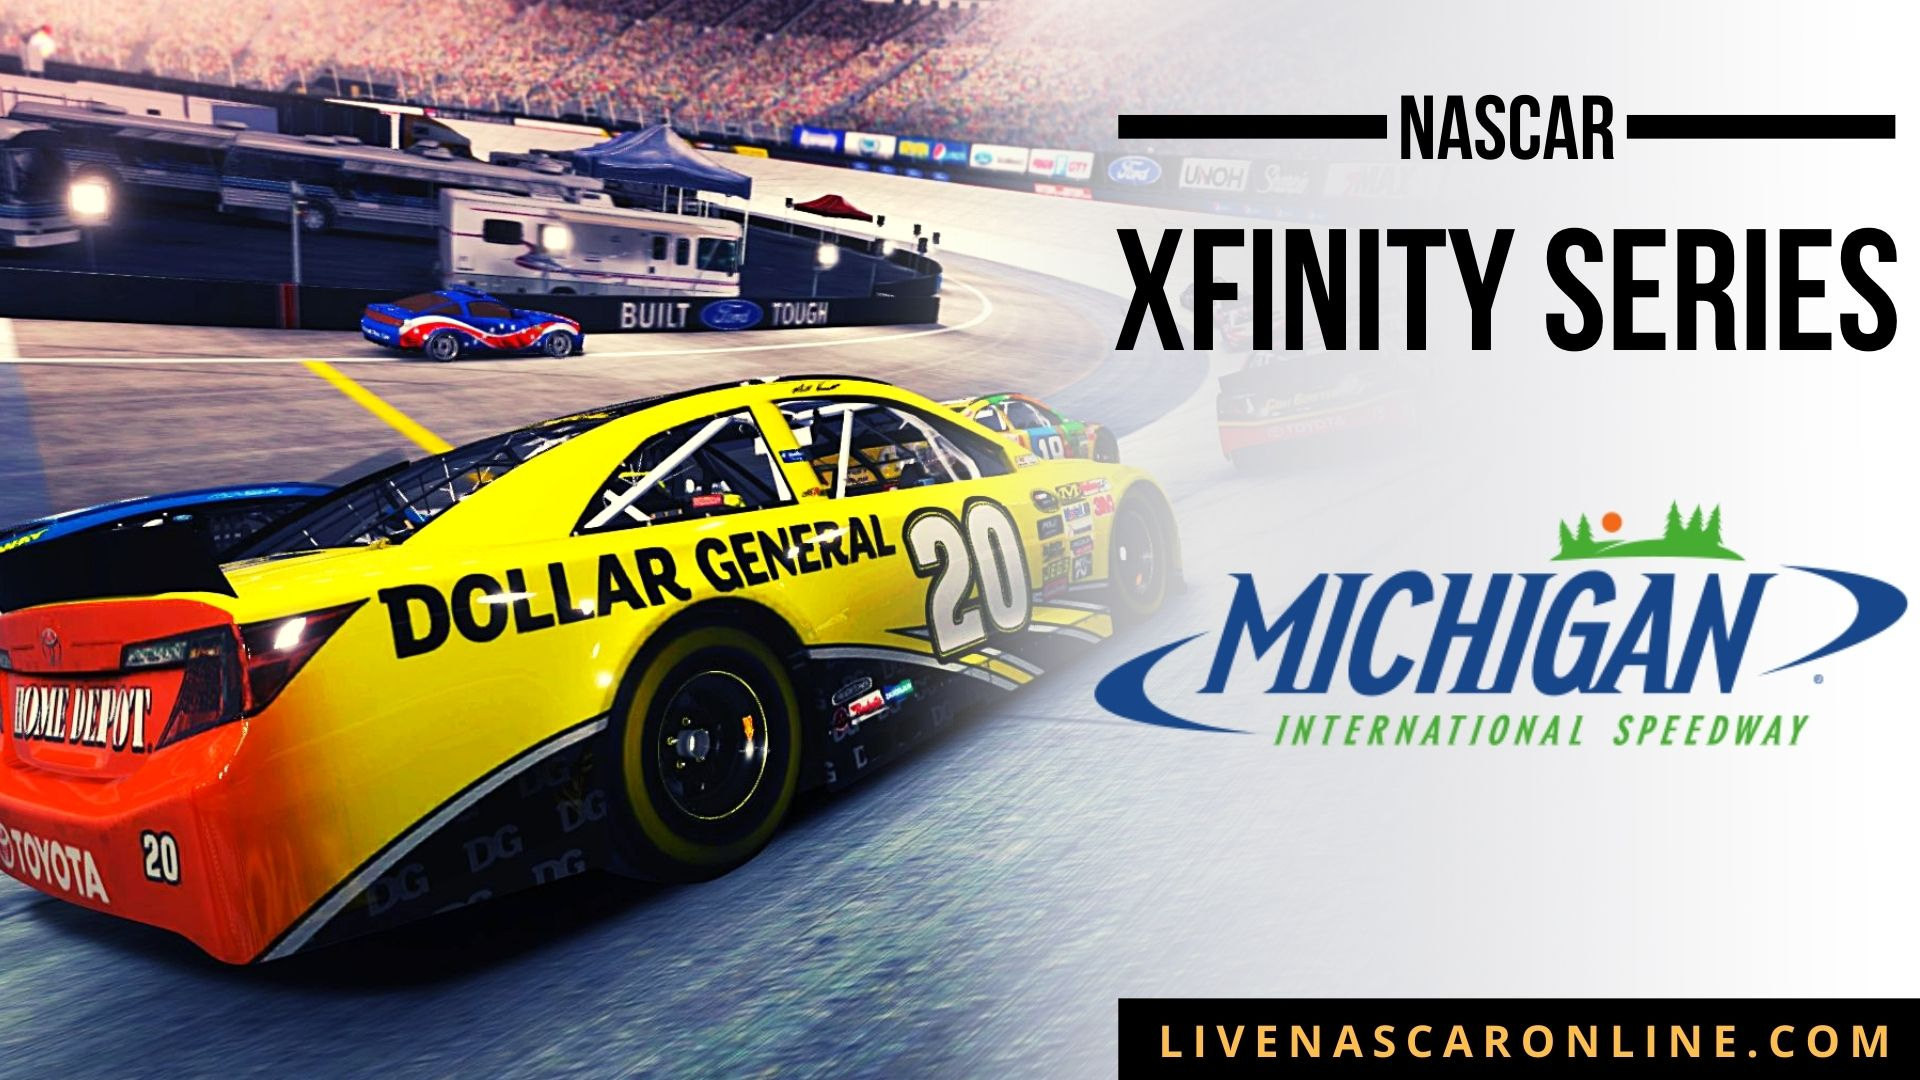 NASCAR Xfinity Race at Michigan Live Stream 2021